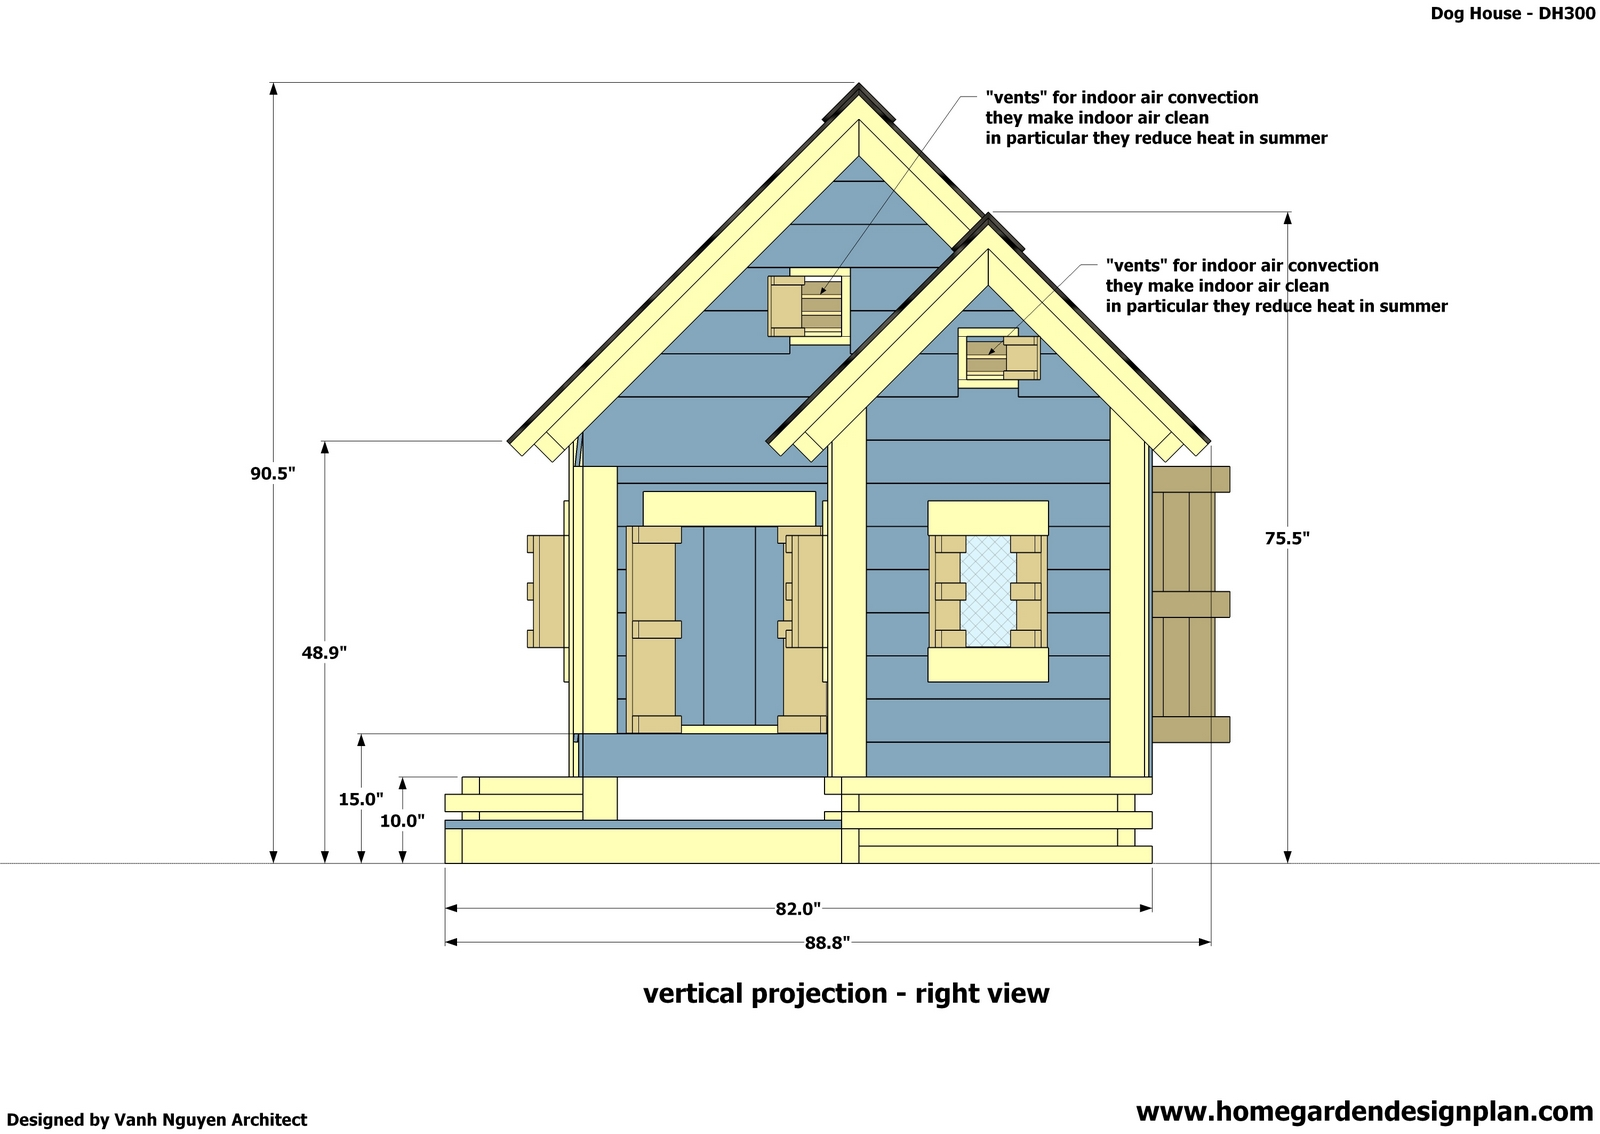 Home garden plans dh300 dog house plans free how to for Home construction design